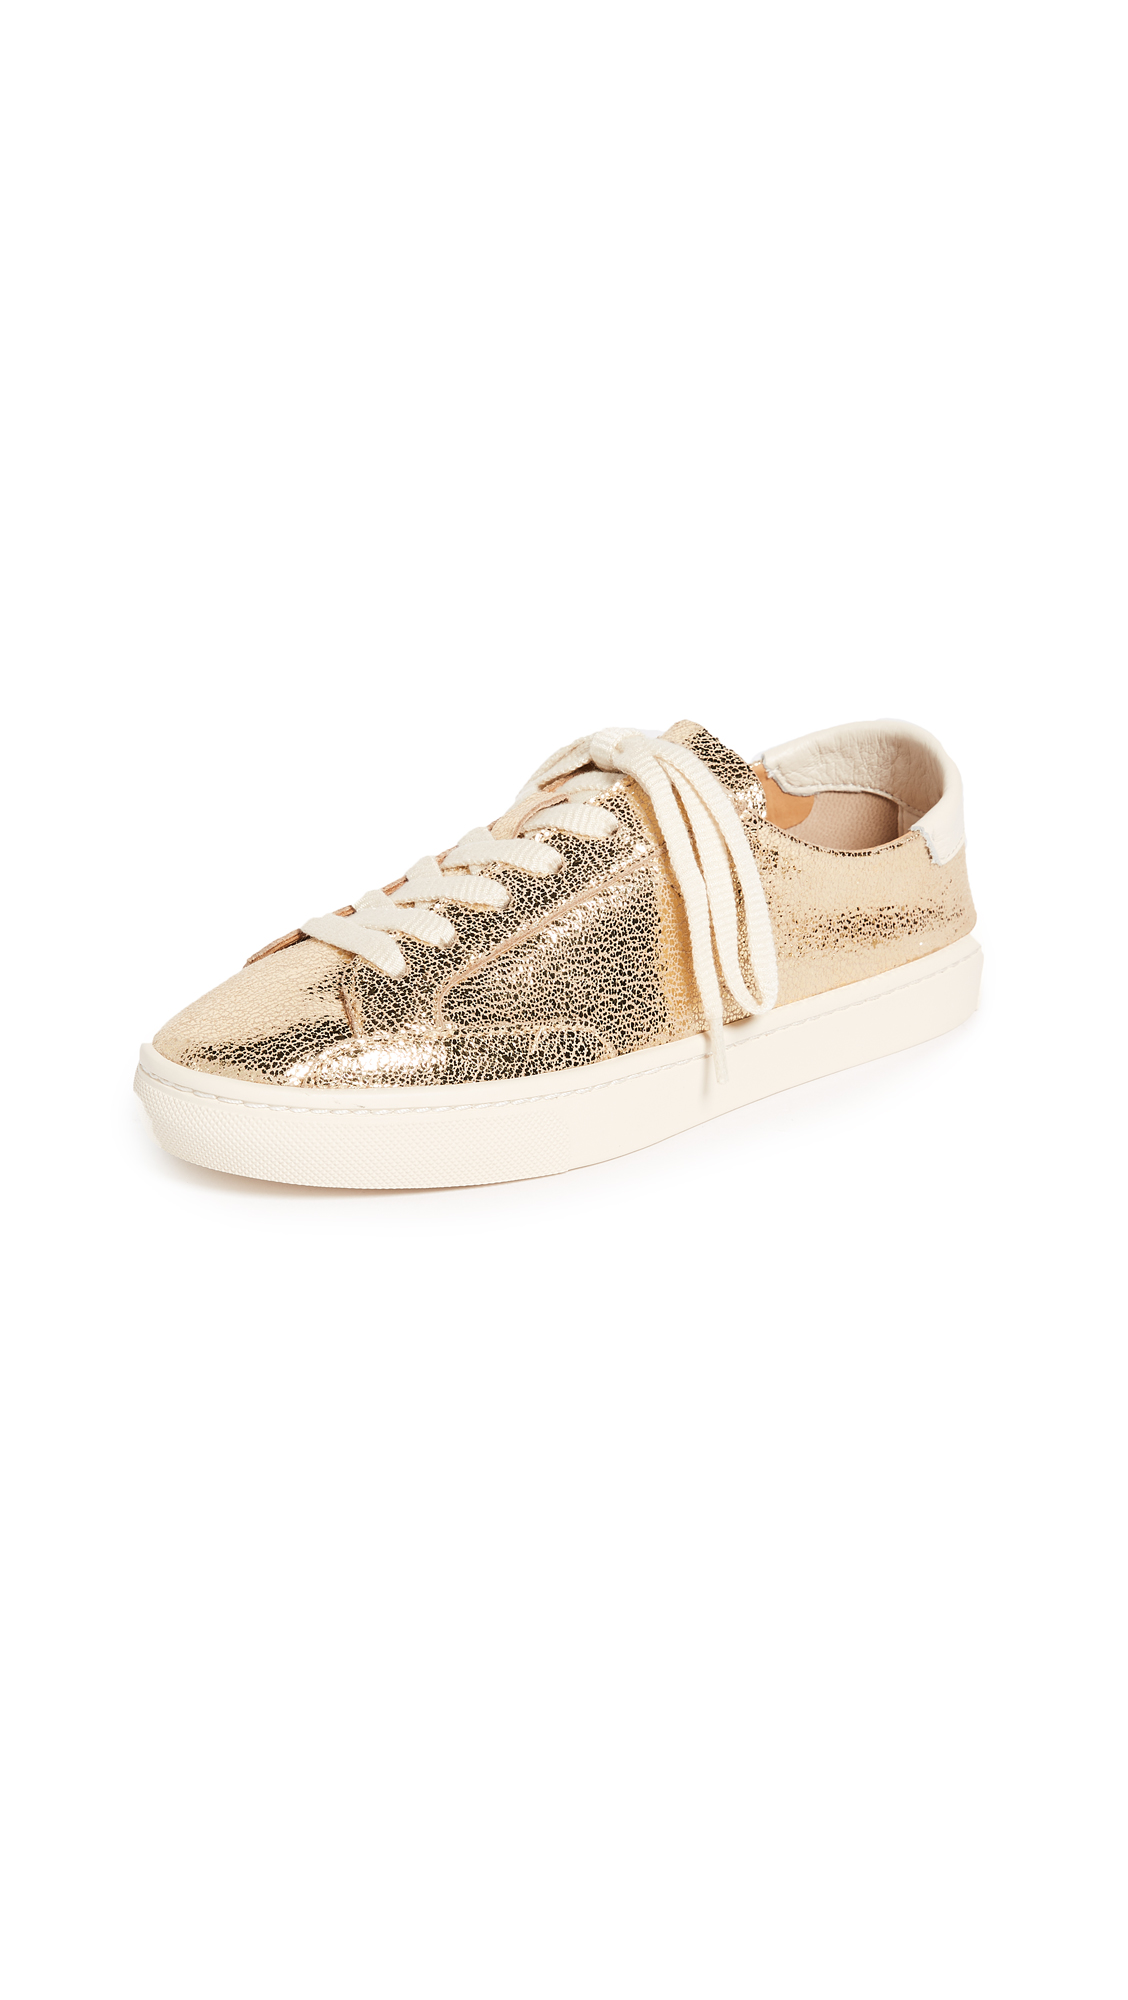 Soludos Metallic Lace Up Sneakers - Pale Gold